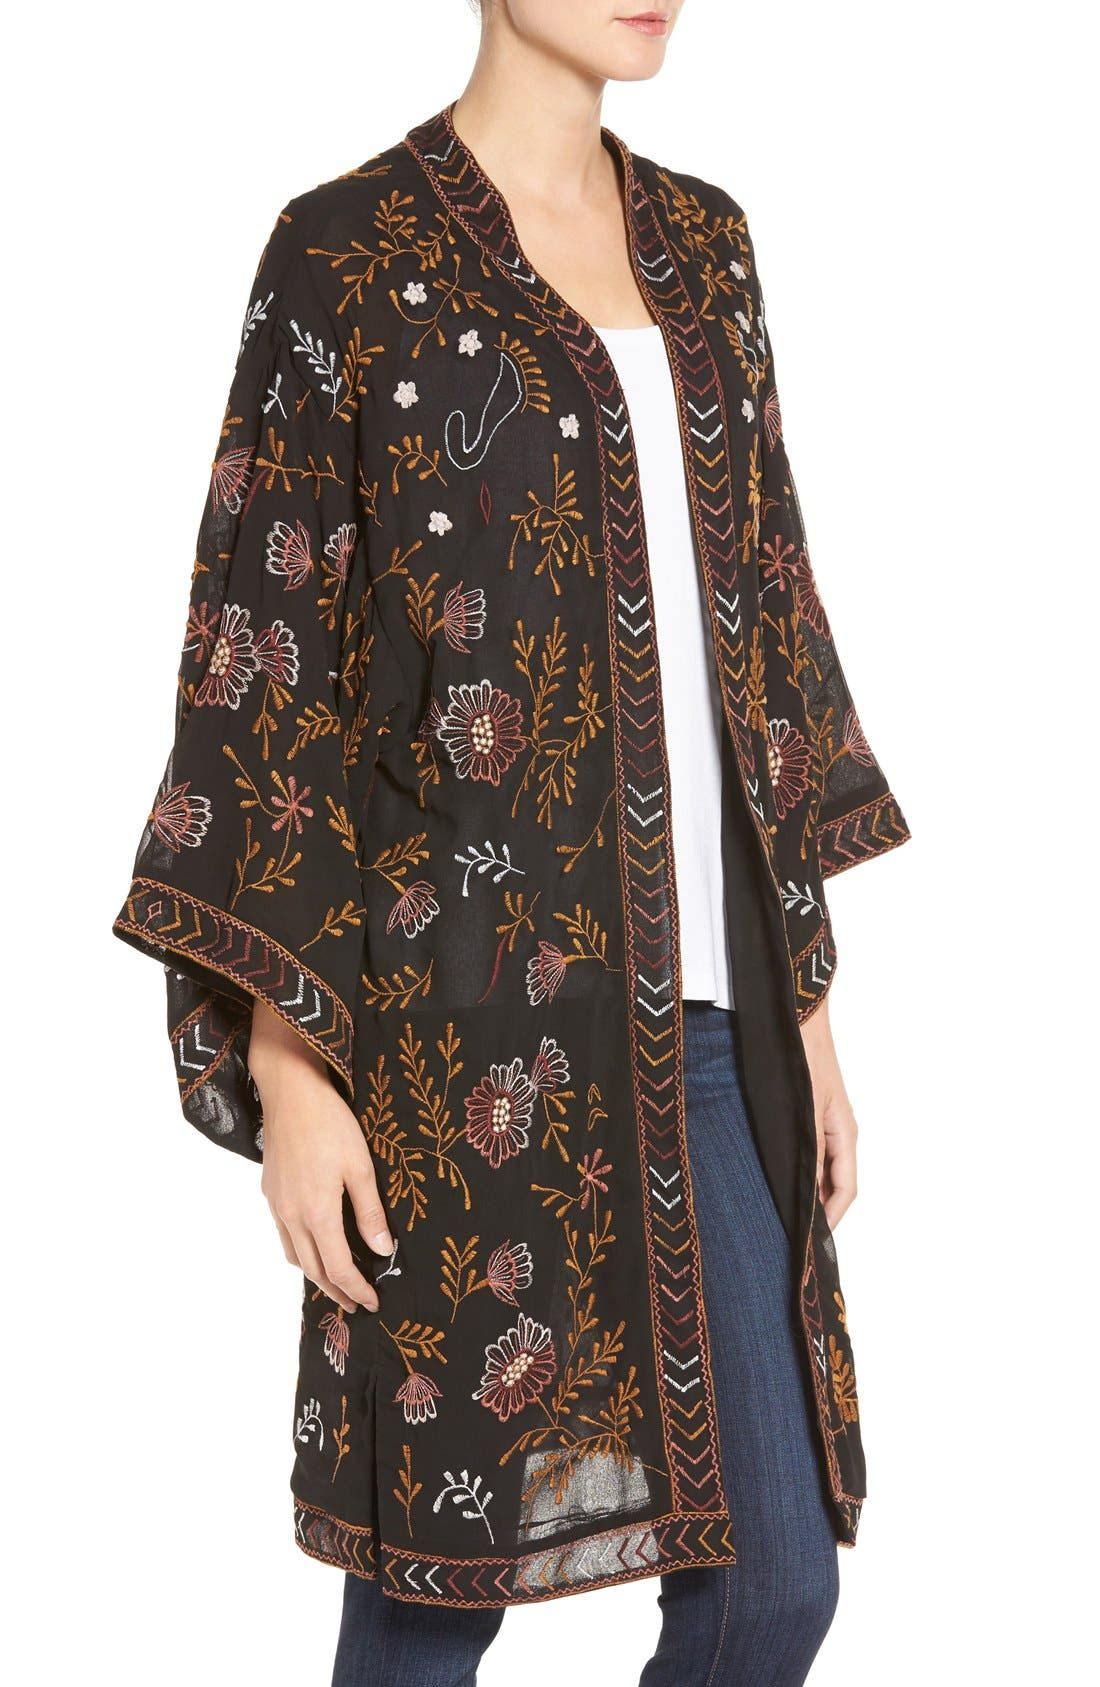 WILLOW & CLAY,                             Embroidered Kimono,                             Alternate thumbnail 6, color,                             001